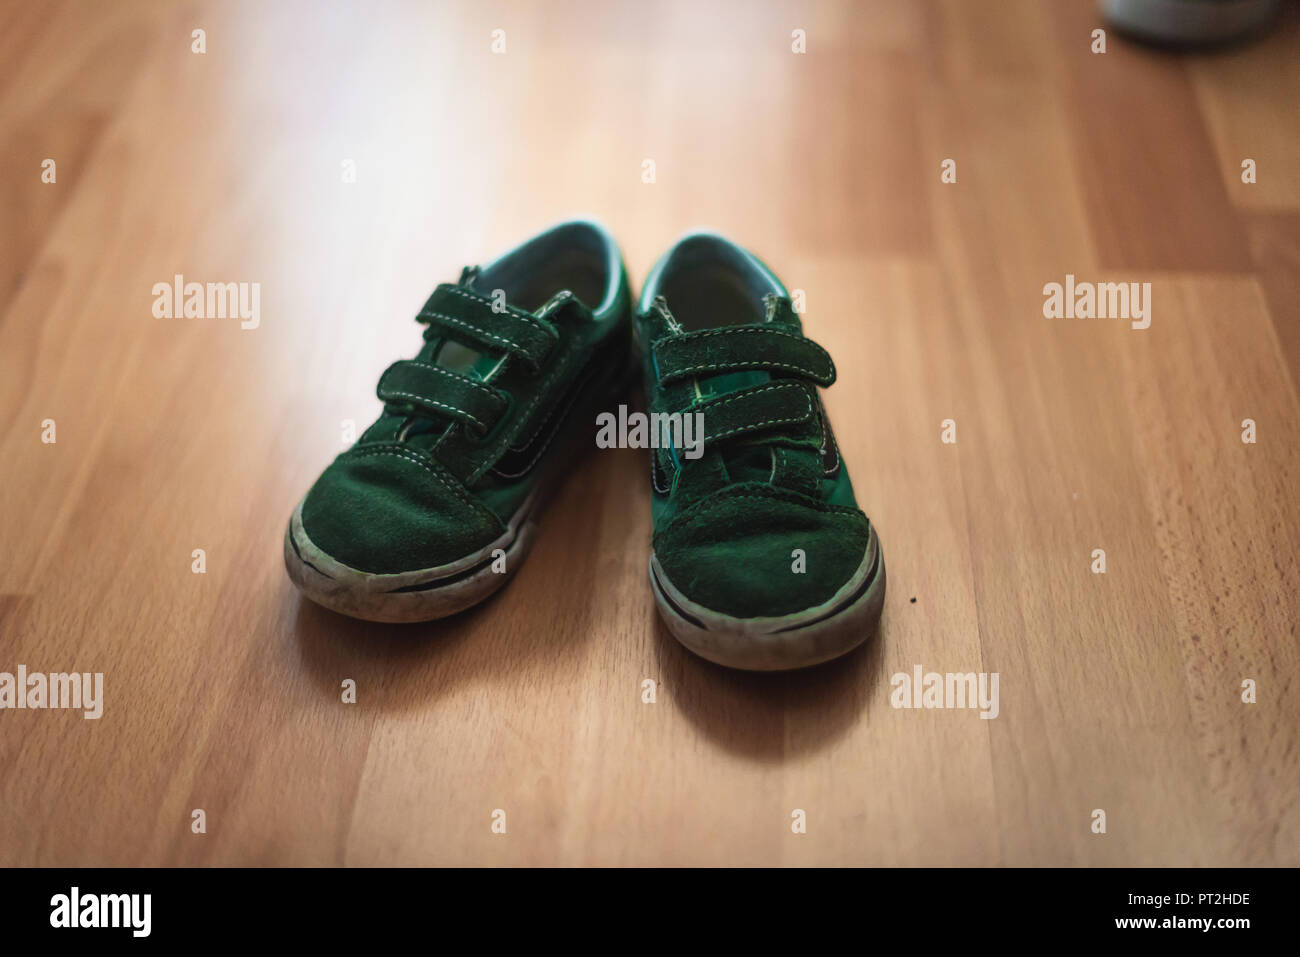 Worn and muddy pair of childs shoes on a wooden floor of a living room. - Stock Image